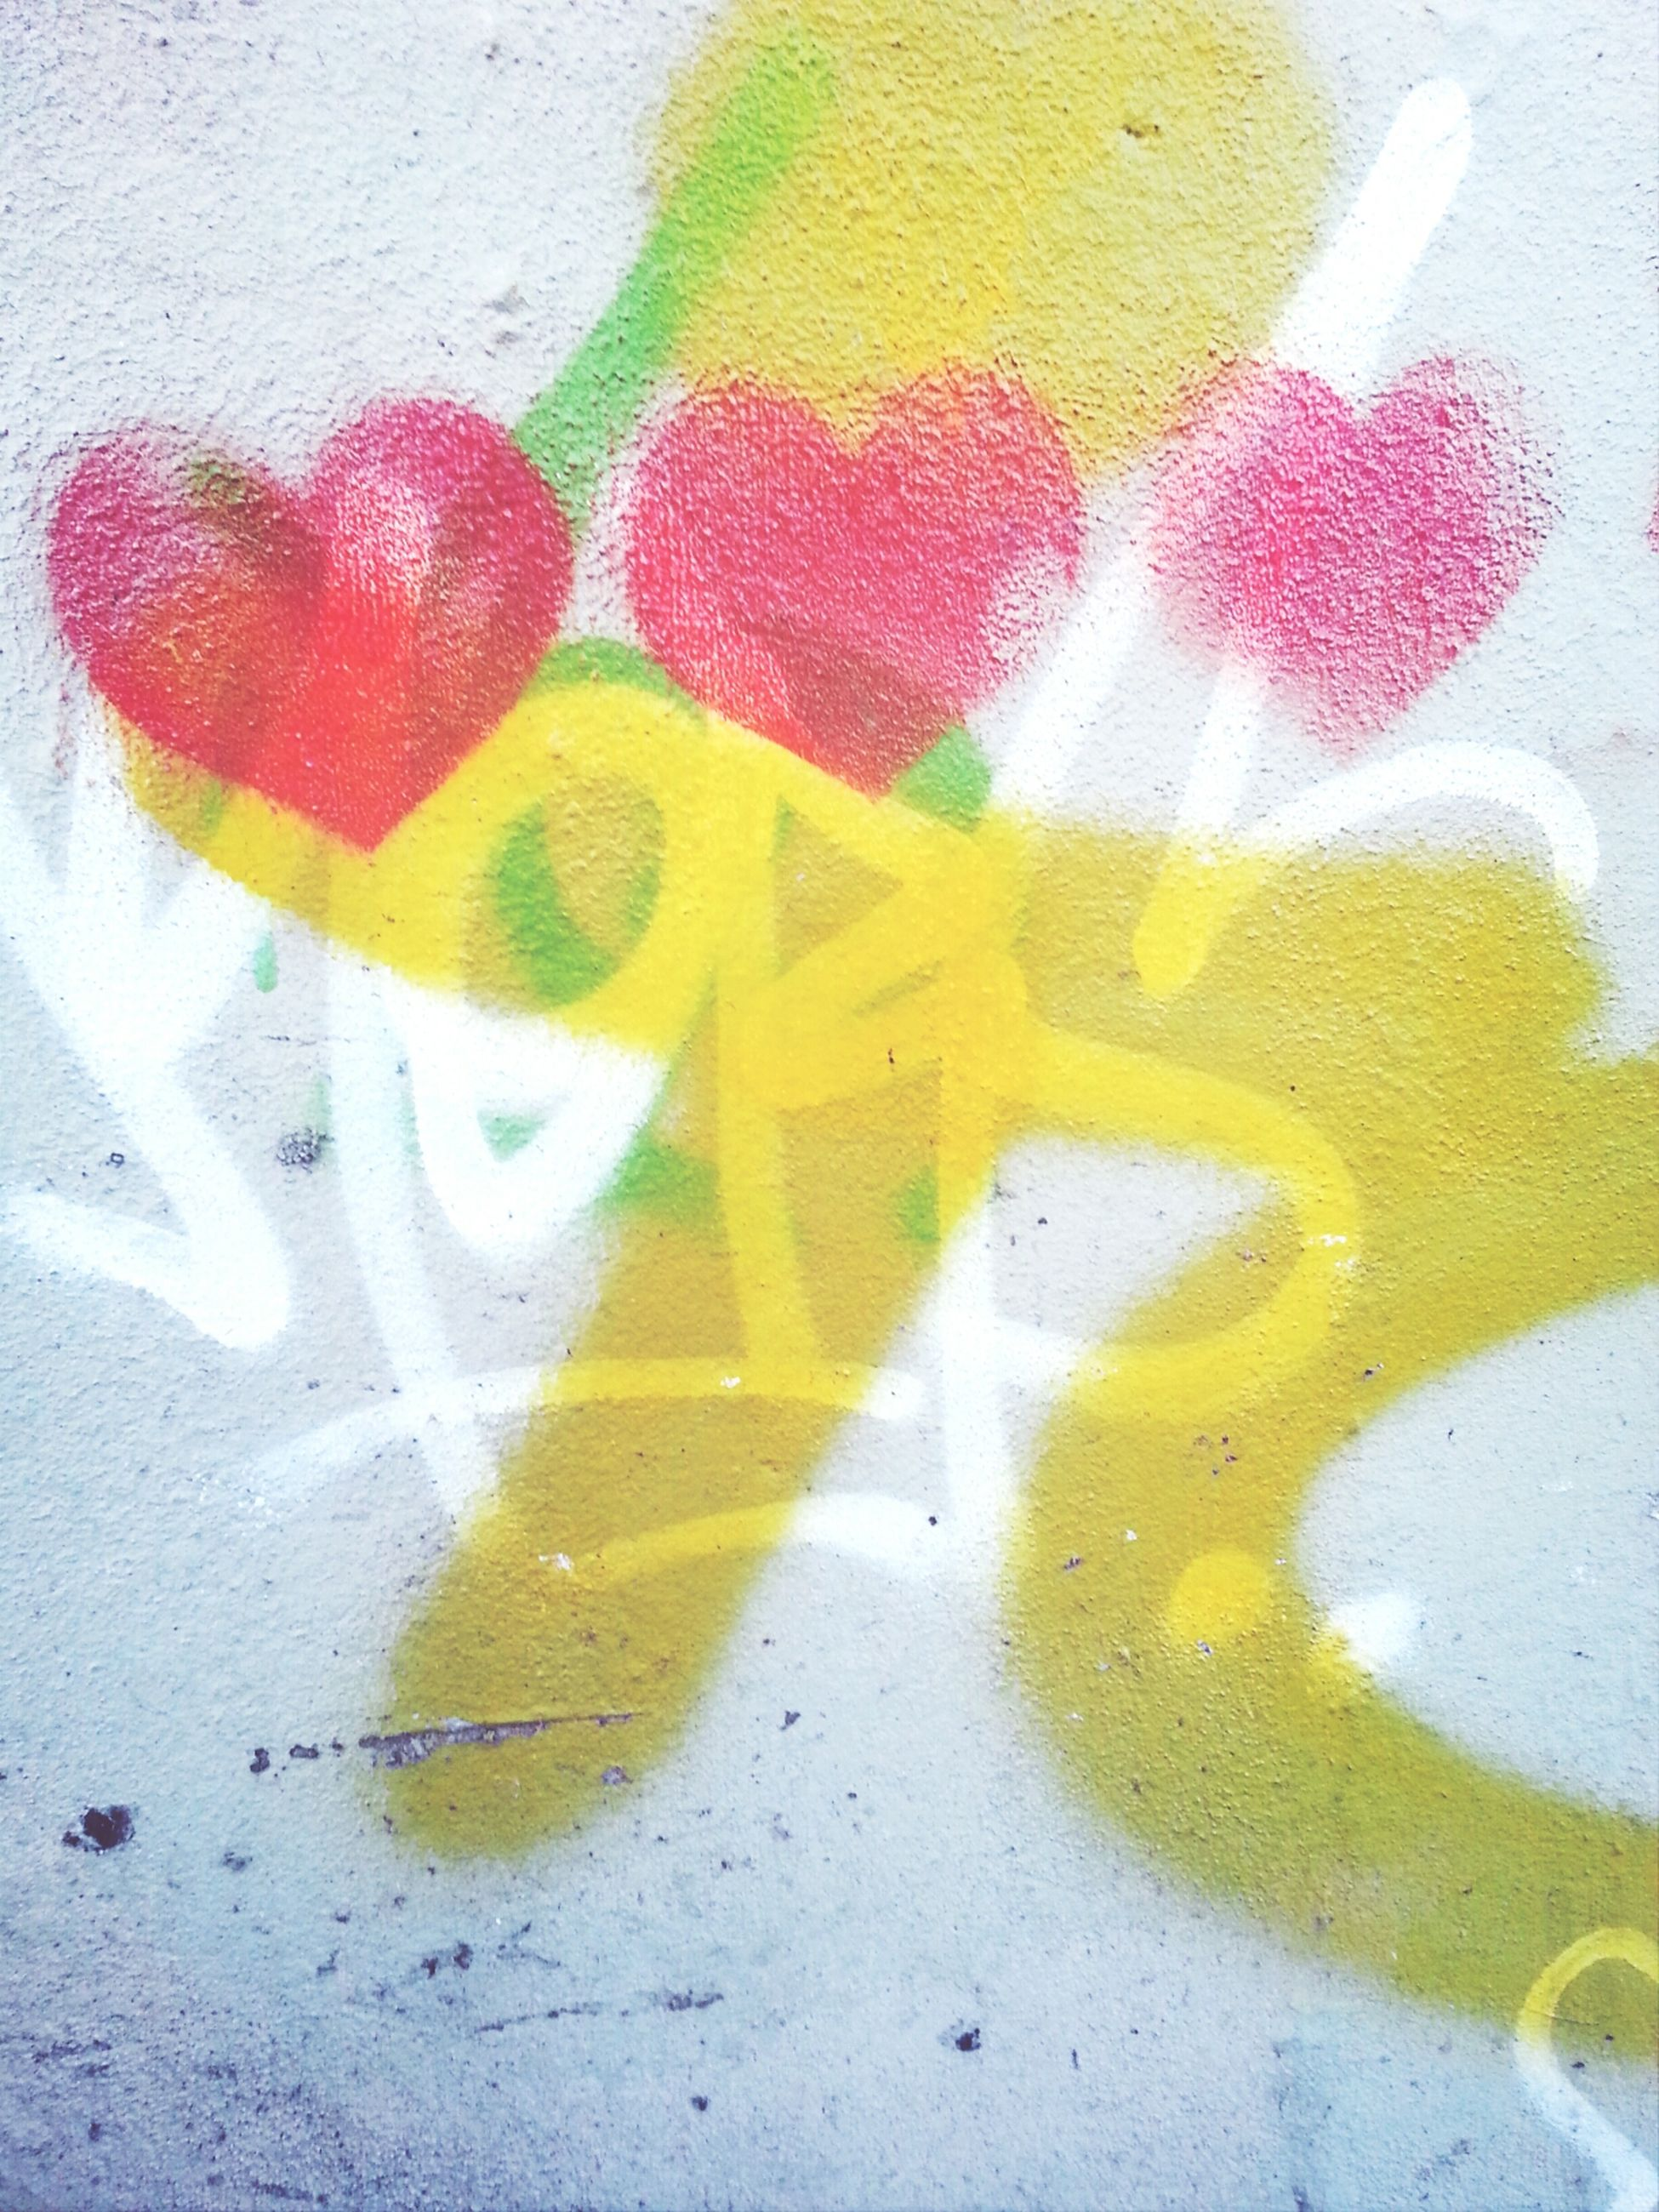 creativity, art, art and craft, close-up, human representation, wall - building feature, yellow, heart shape, high angle view, paint, graffiti, love, communication, animal representation, multi colored, anthropomorphic face, text, drawing - art product, ideas, indoors